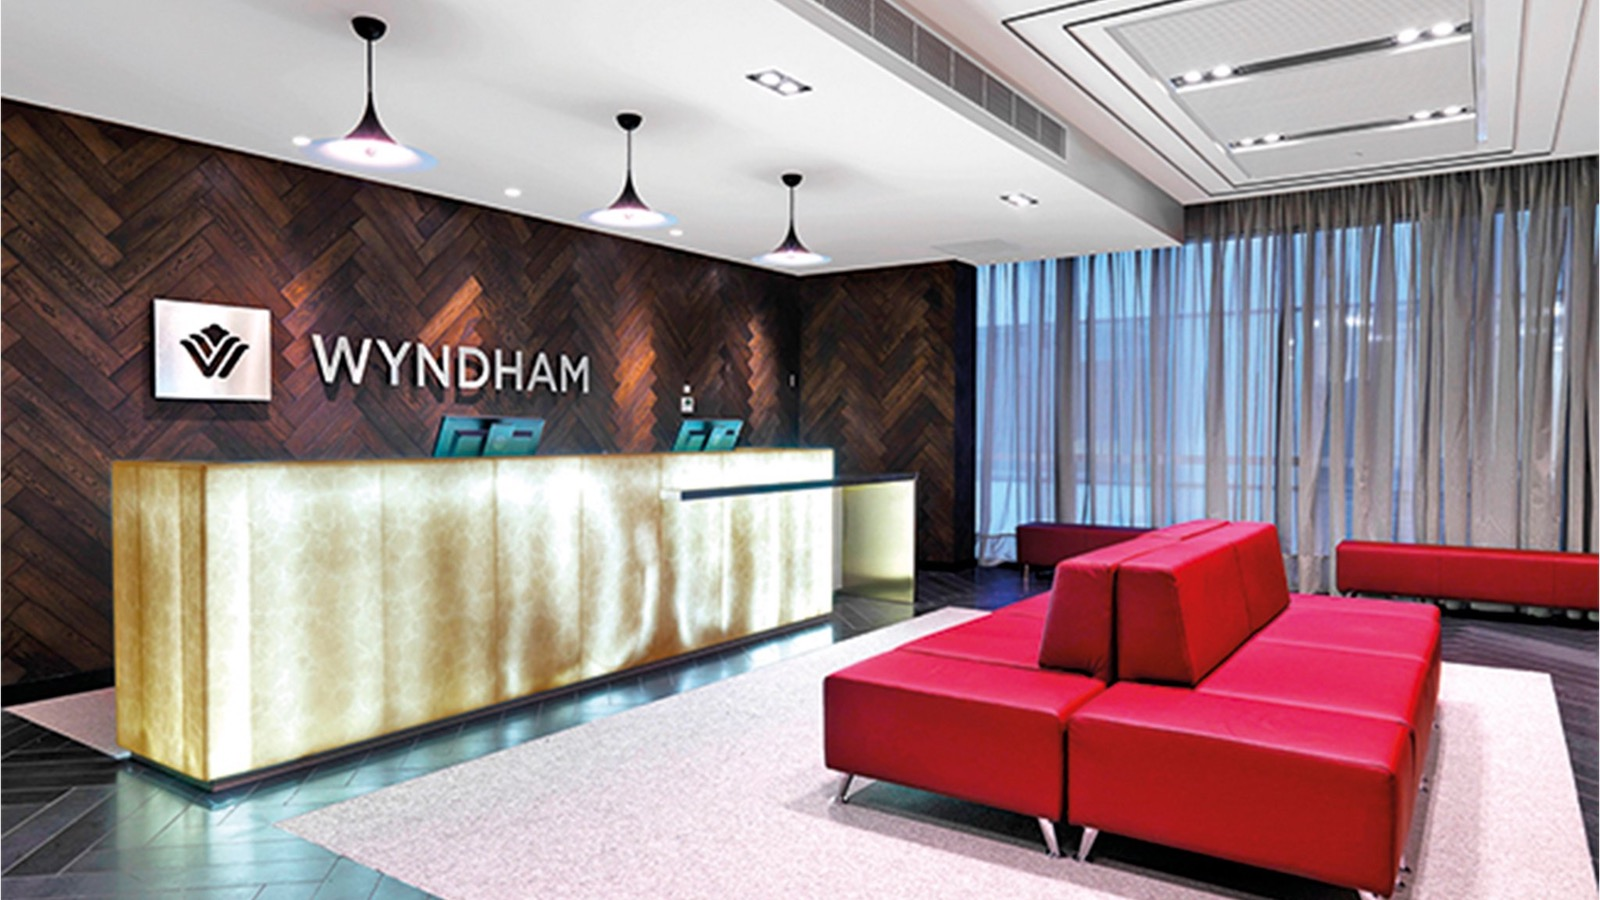 Wyndham Melbourne Reception